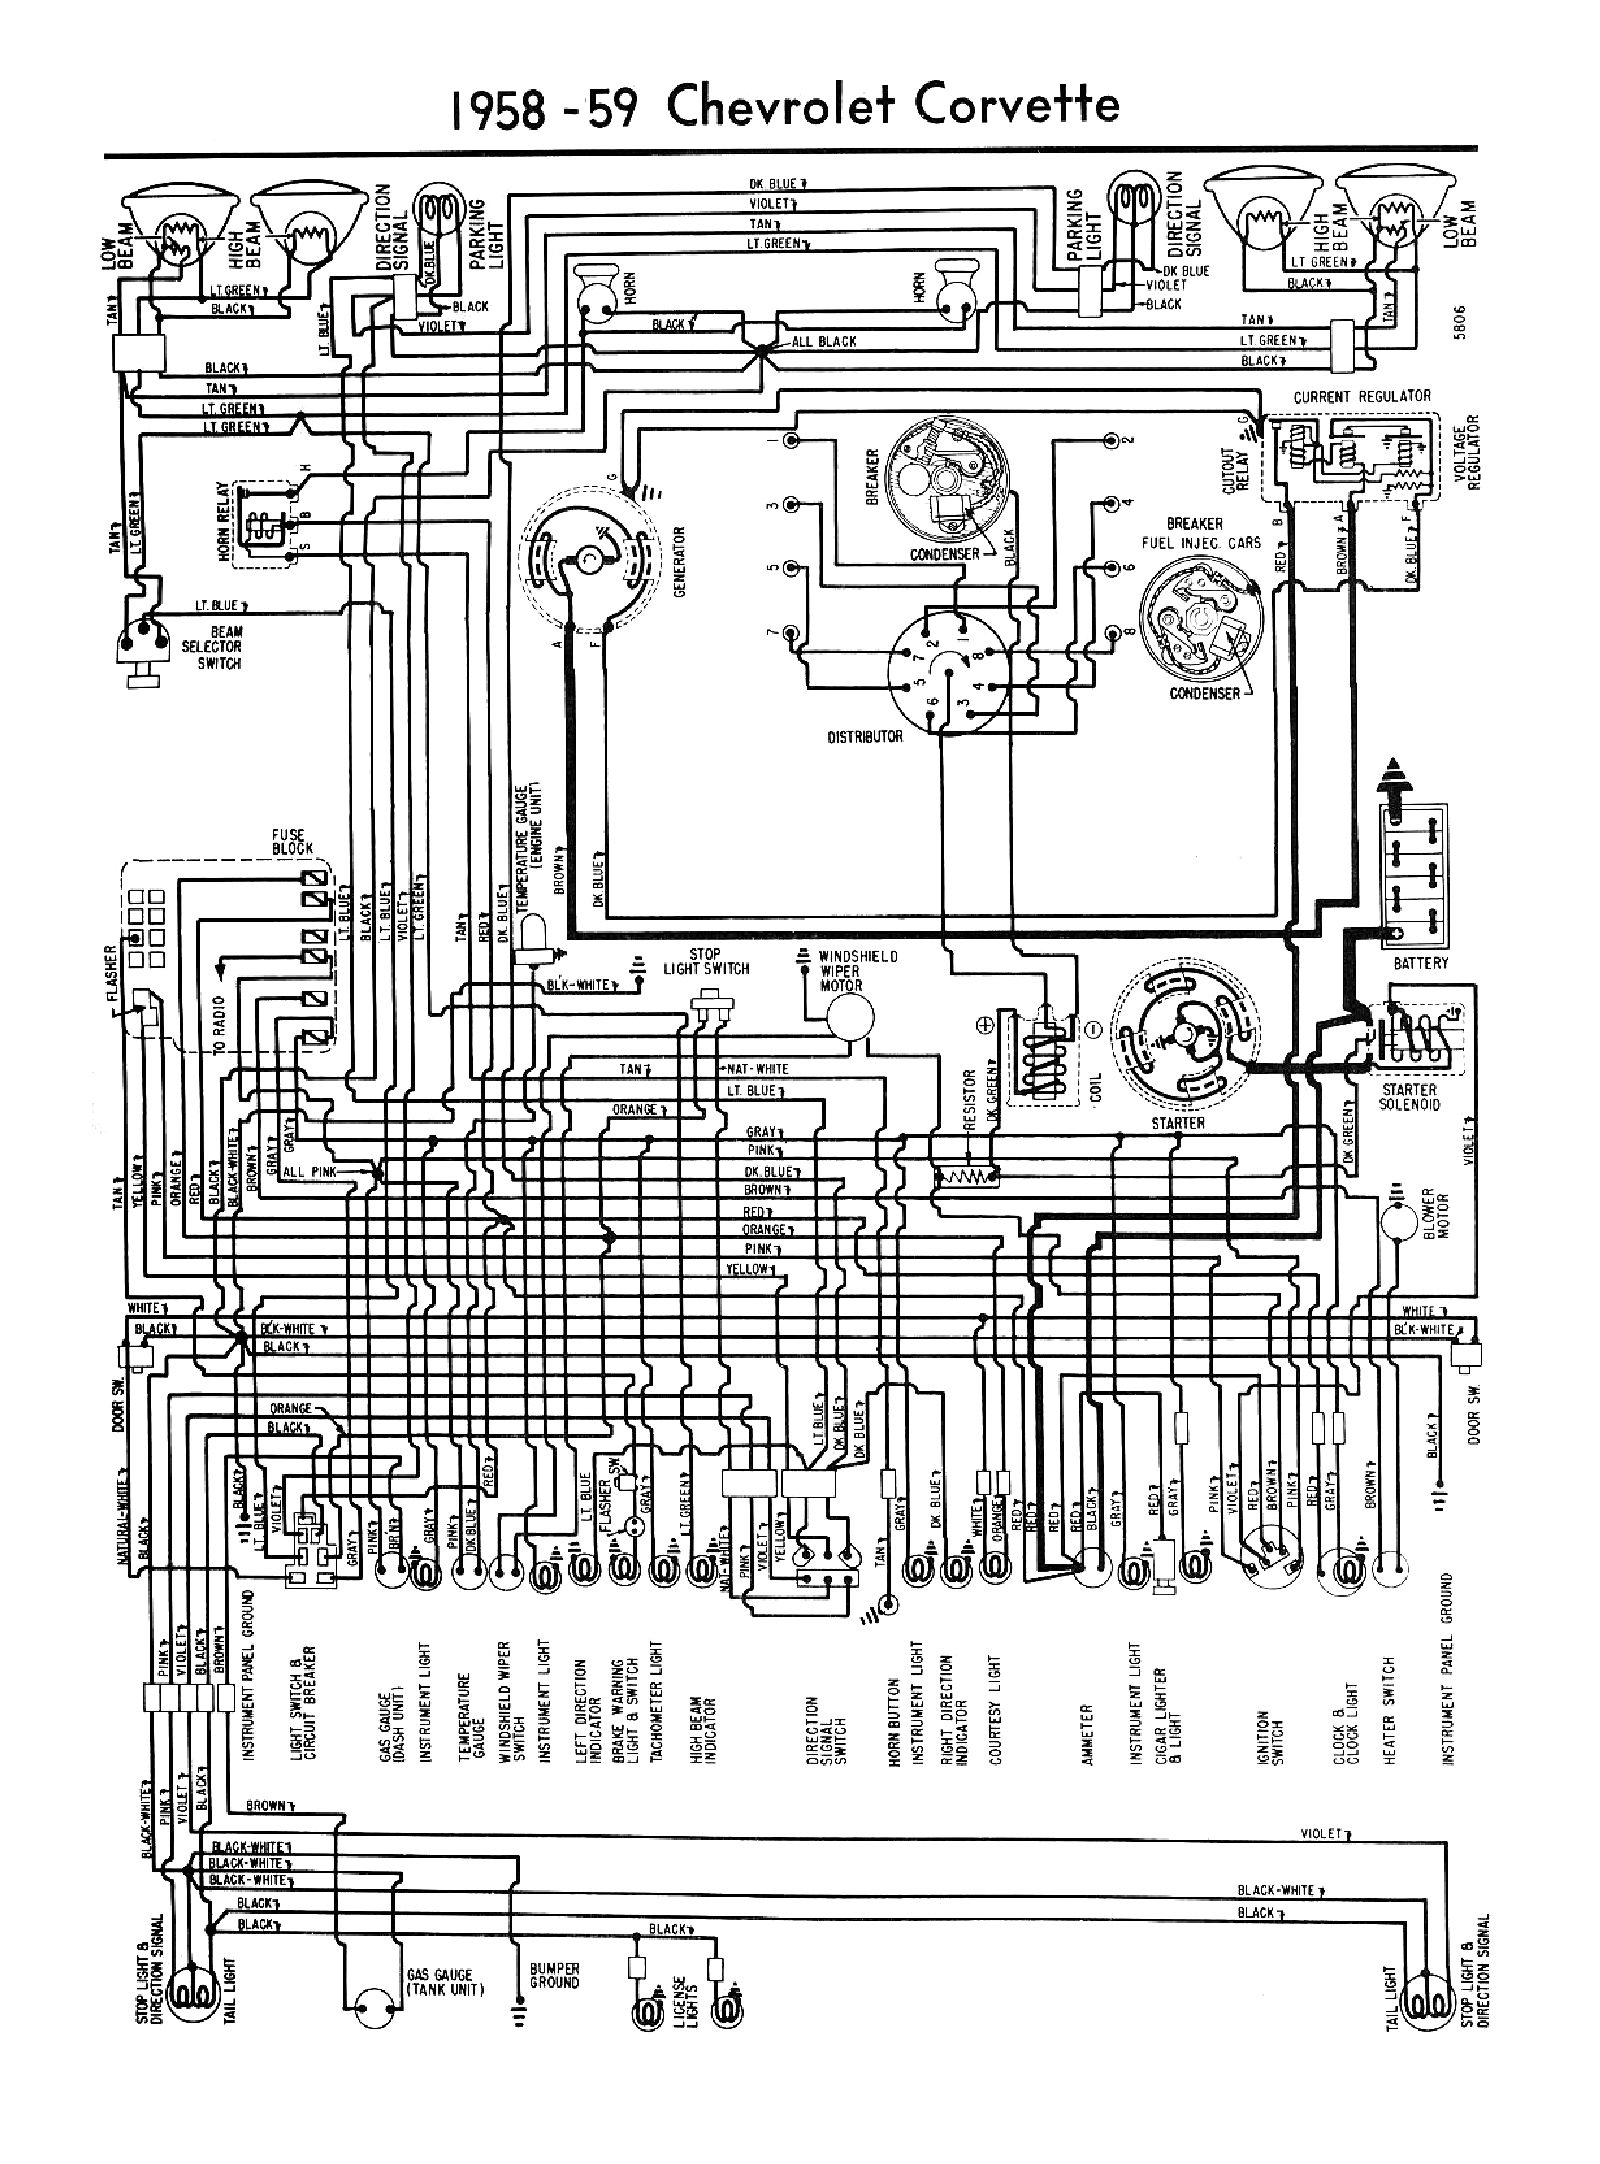 hight resolution of 1958 oldsmobile wiring diagram wiring library basic electrical wiring diagrams 1958 corvette wiring diagram